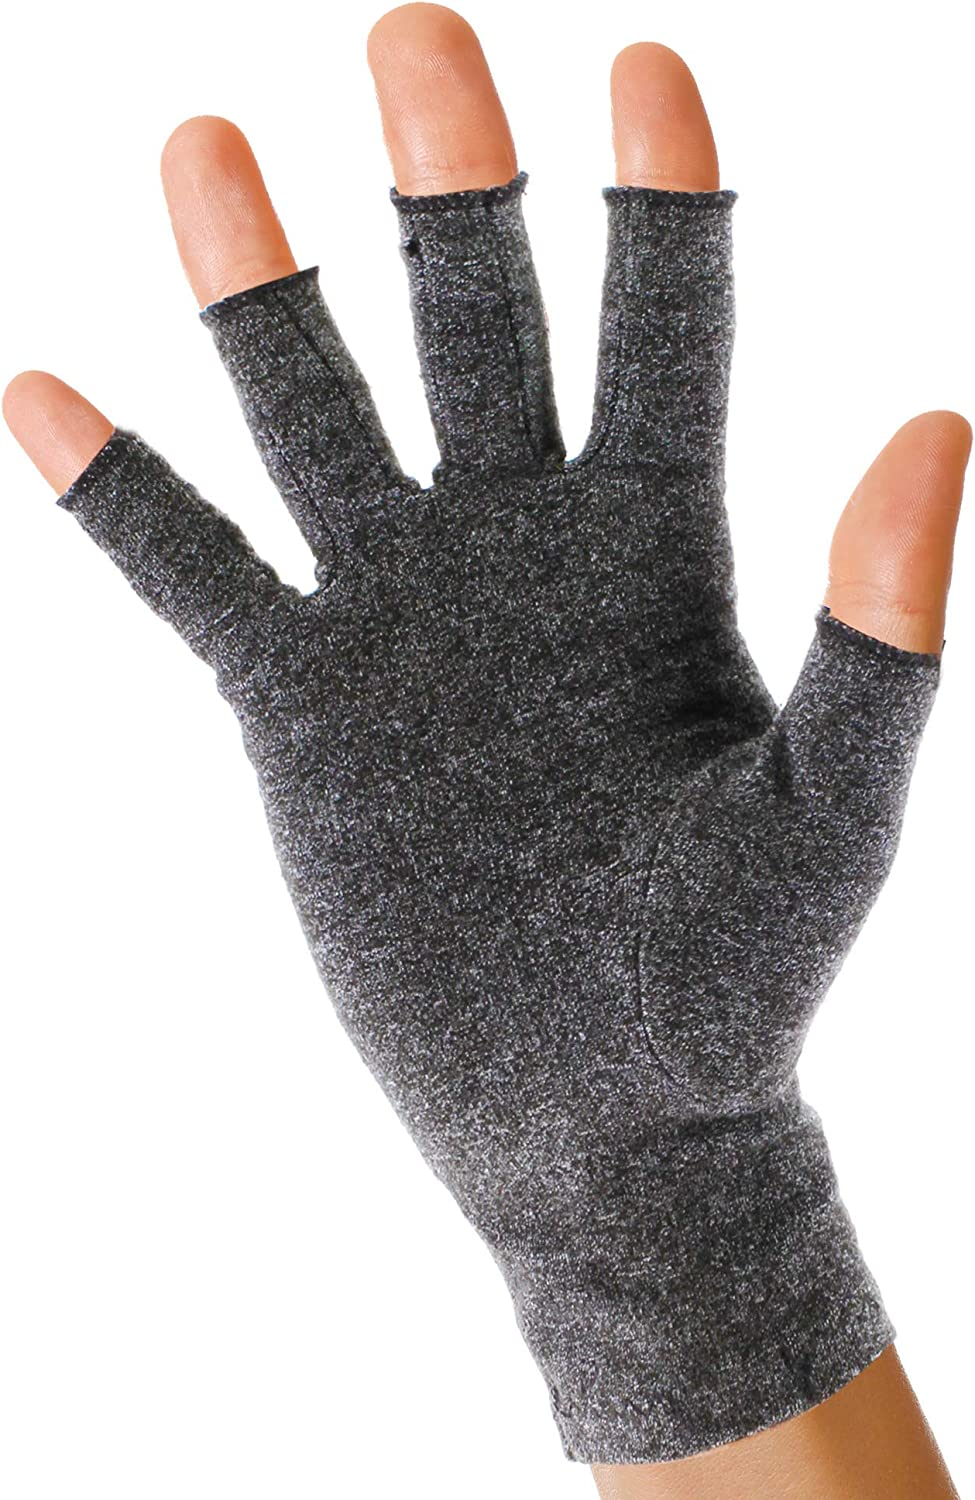 Pivit Arthritis Gloves Compression Osteo Free shipping anywhere in the nation for Rheumatoid 5 ☆ very popular Glove